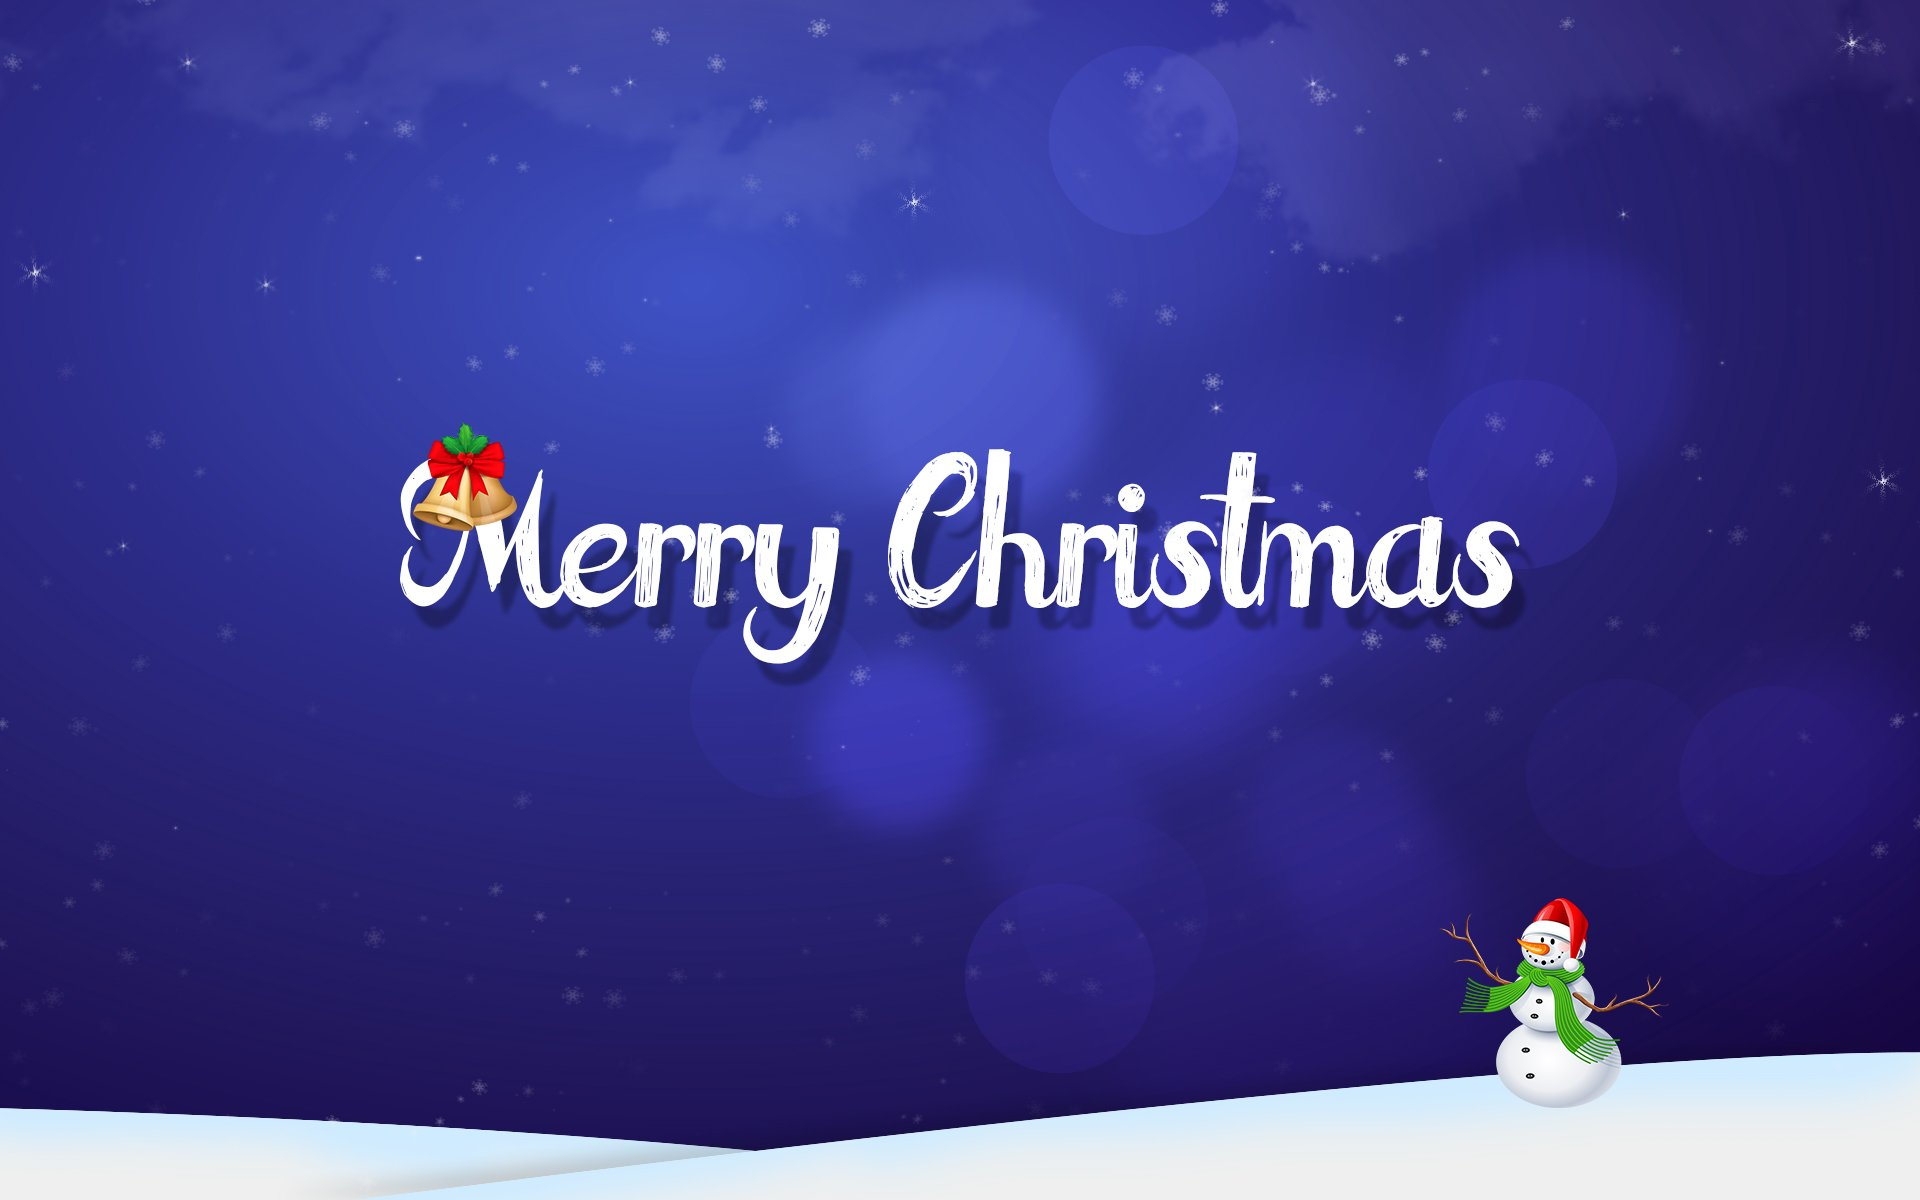 Christmas Greetings Wallpapers